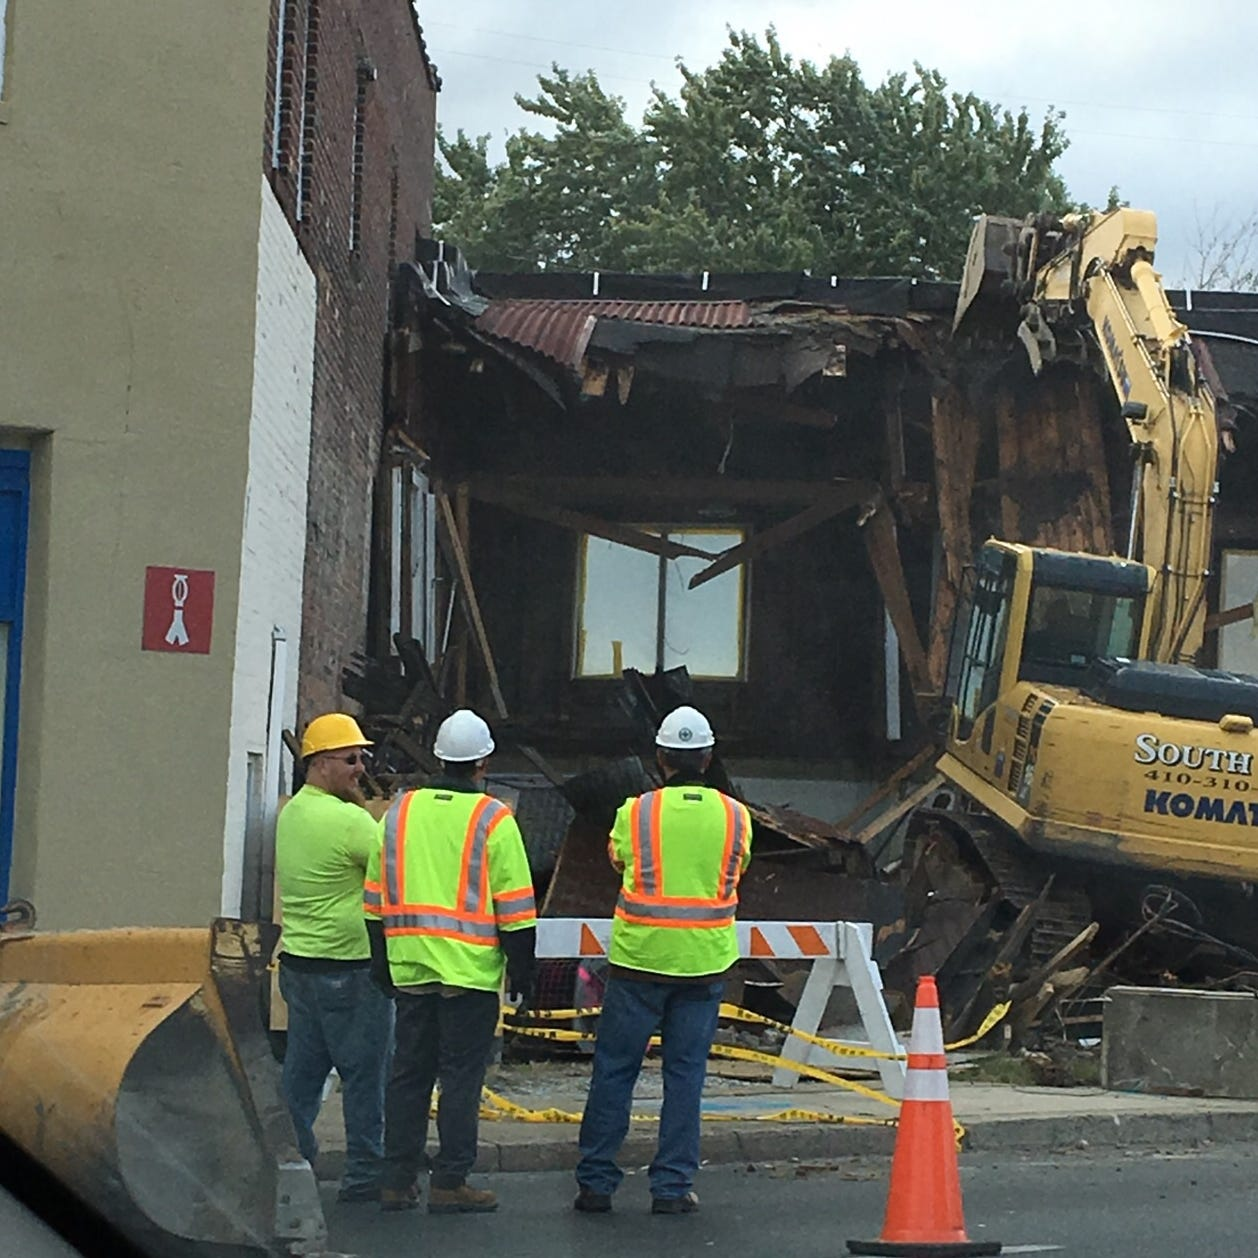 Sex shop razed in Salisbury on Route 13